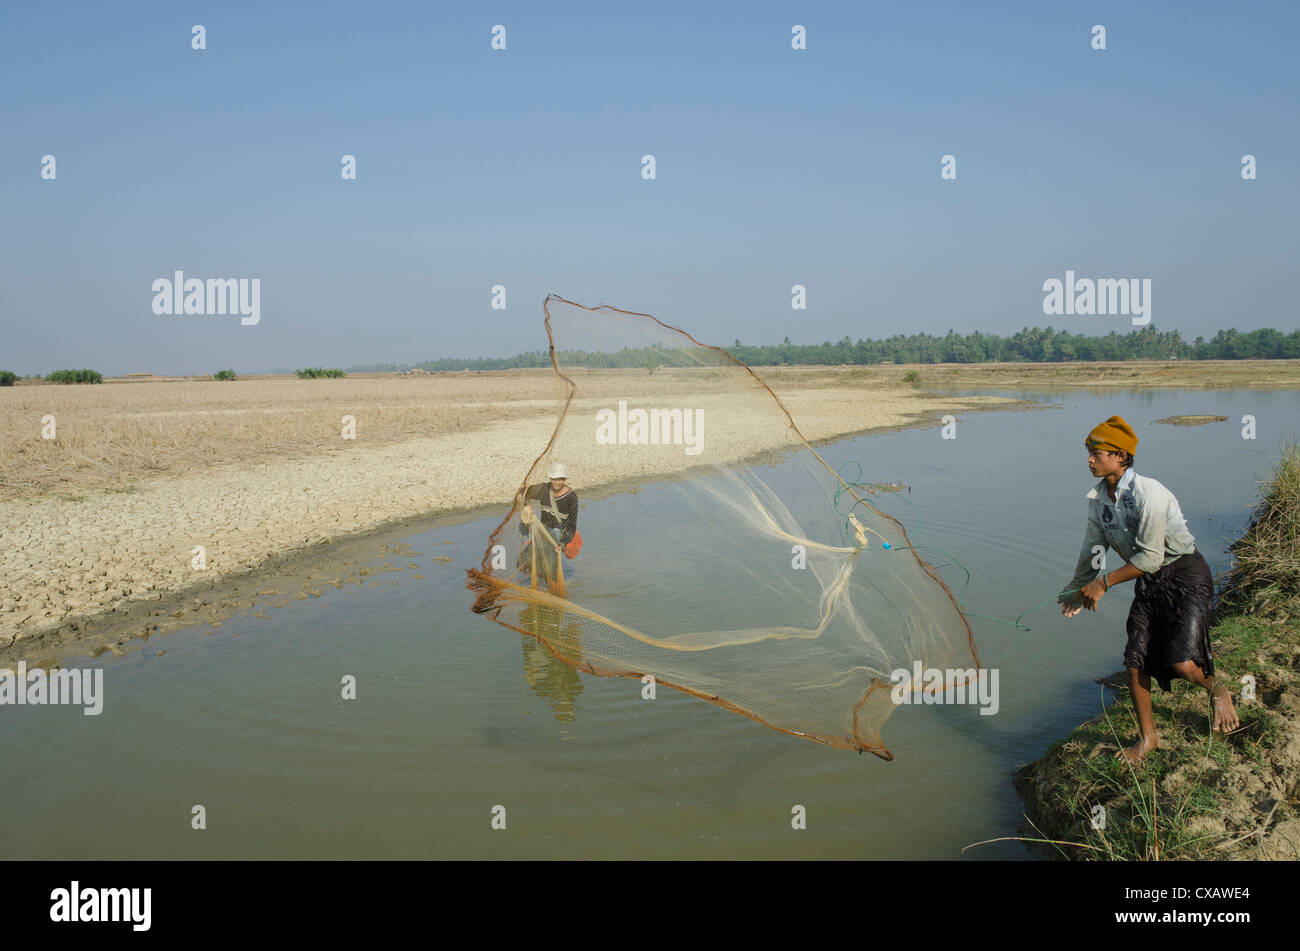 Youngster fishing with fishing net in a waterway, Irrawaddy delta, Myanmar (Burma), Asia - Stock Image